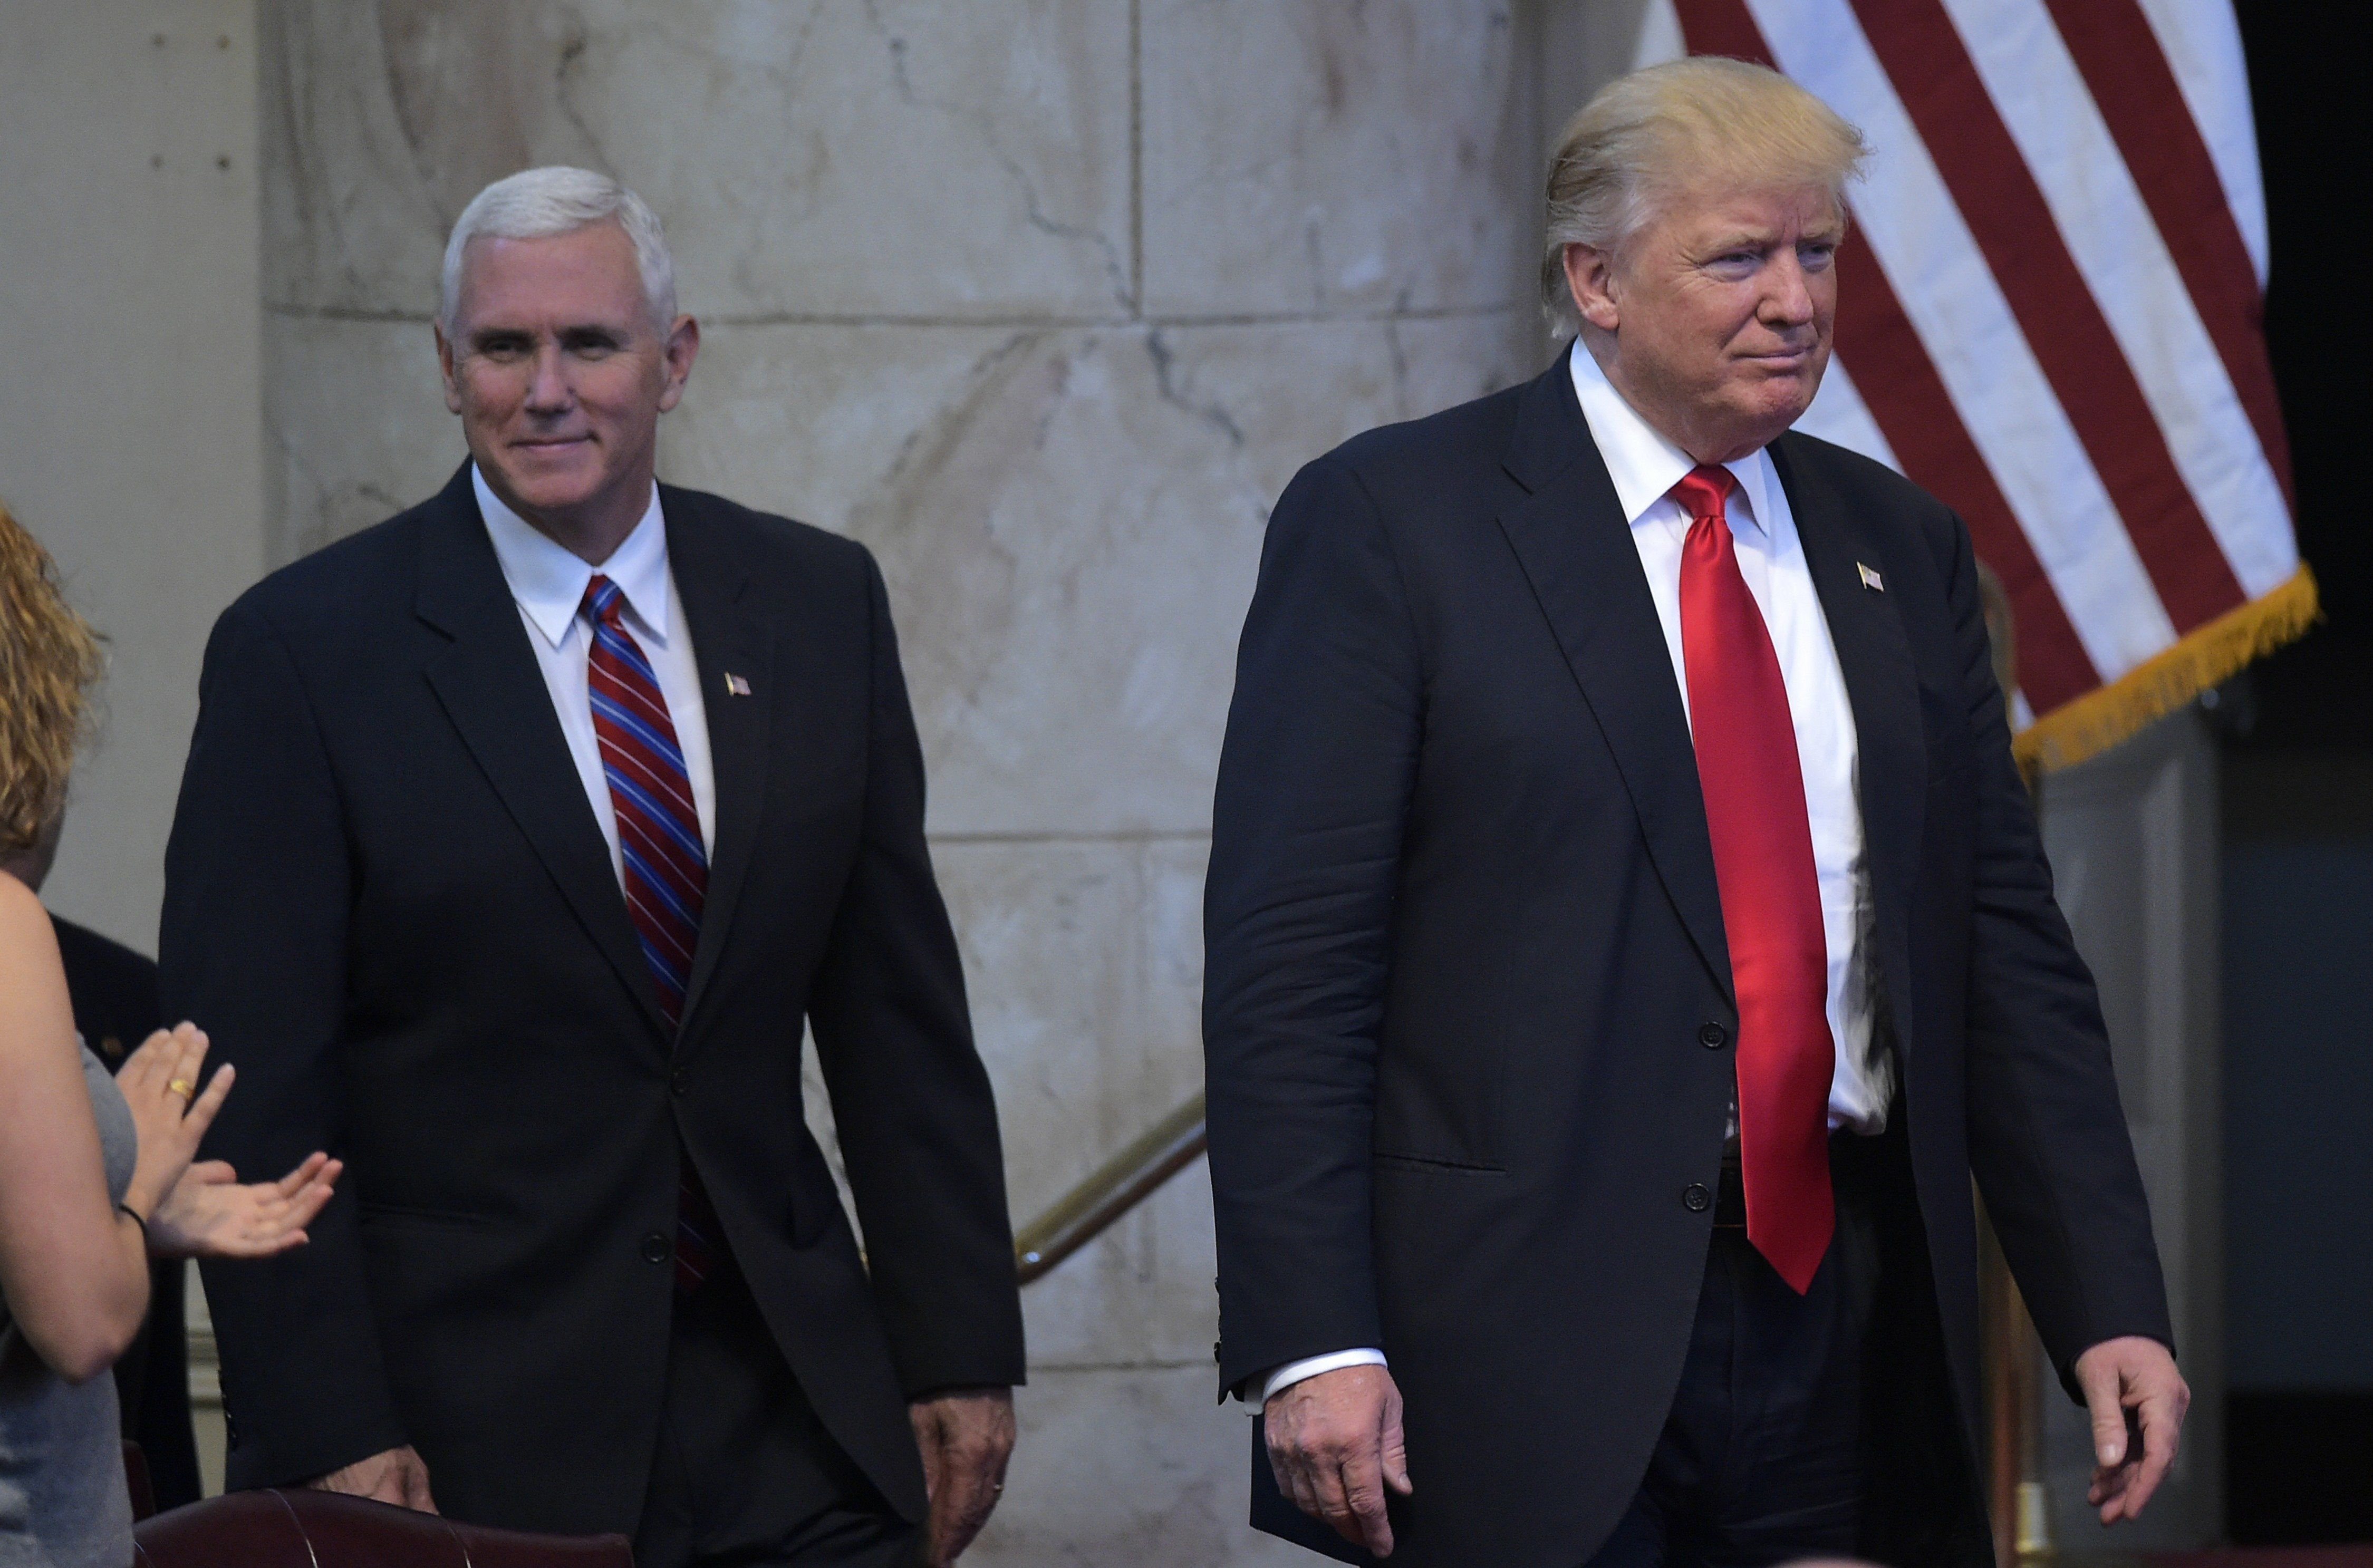 Republican presidential nominee Donald Trump (R) and running mate Mike Pence arrive for the Midwest Vision and Values Pastors and Leadership Conference at the New Spirit Revival Center in Cleveland Heights, Ohio on September 21, 2016. / AFP / MANDEL NGAN        (Photo credit should read MANDEL NGAN/AFP/Getty Images)